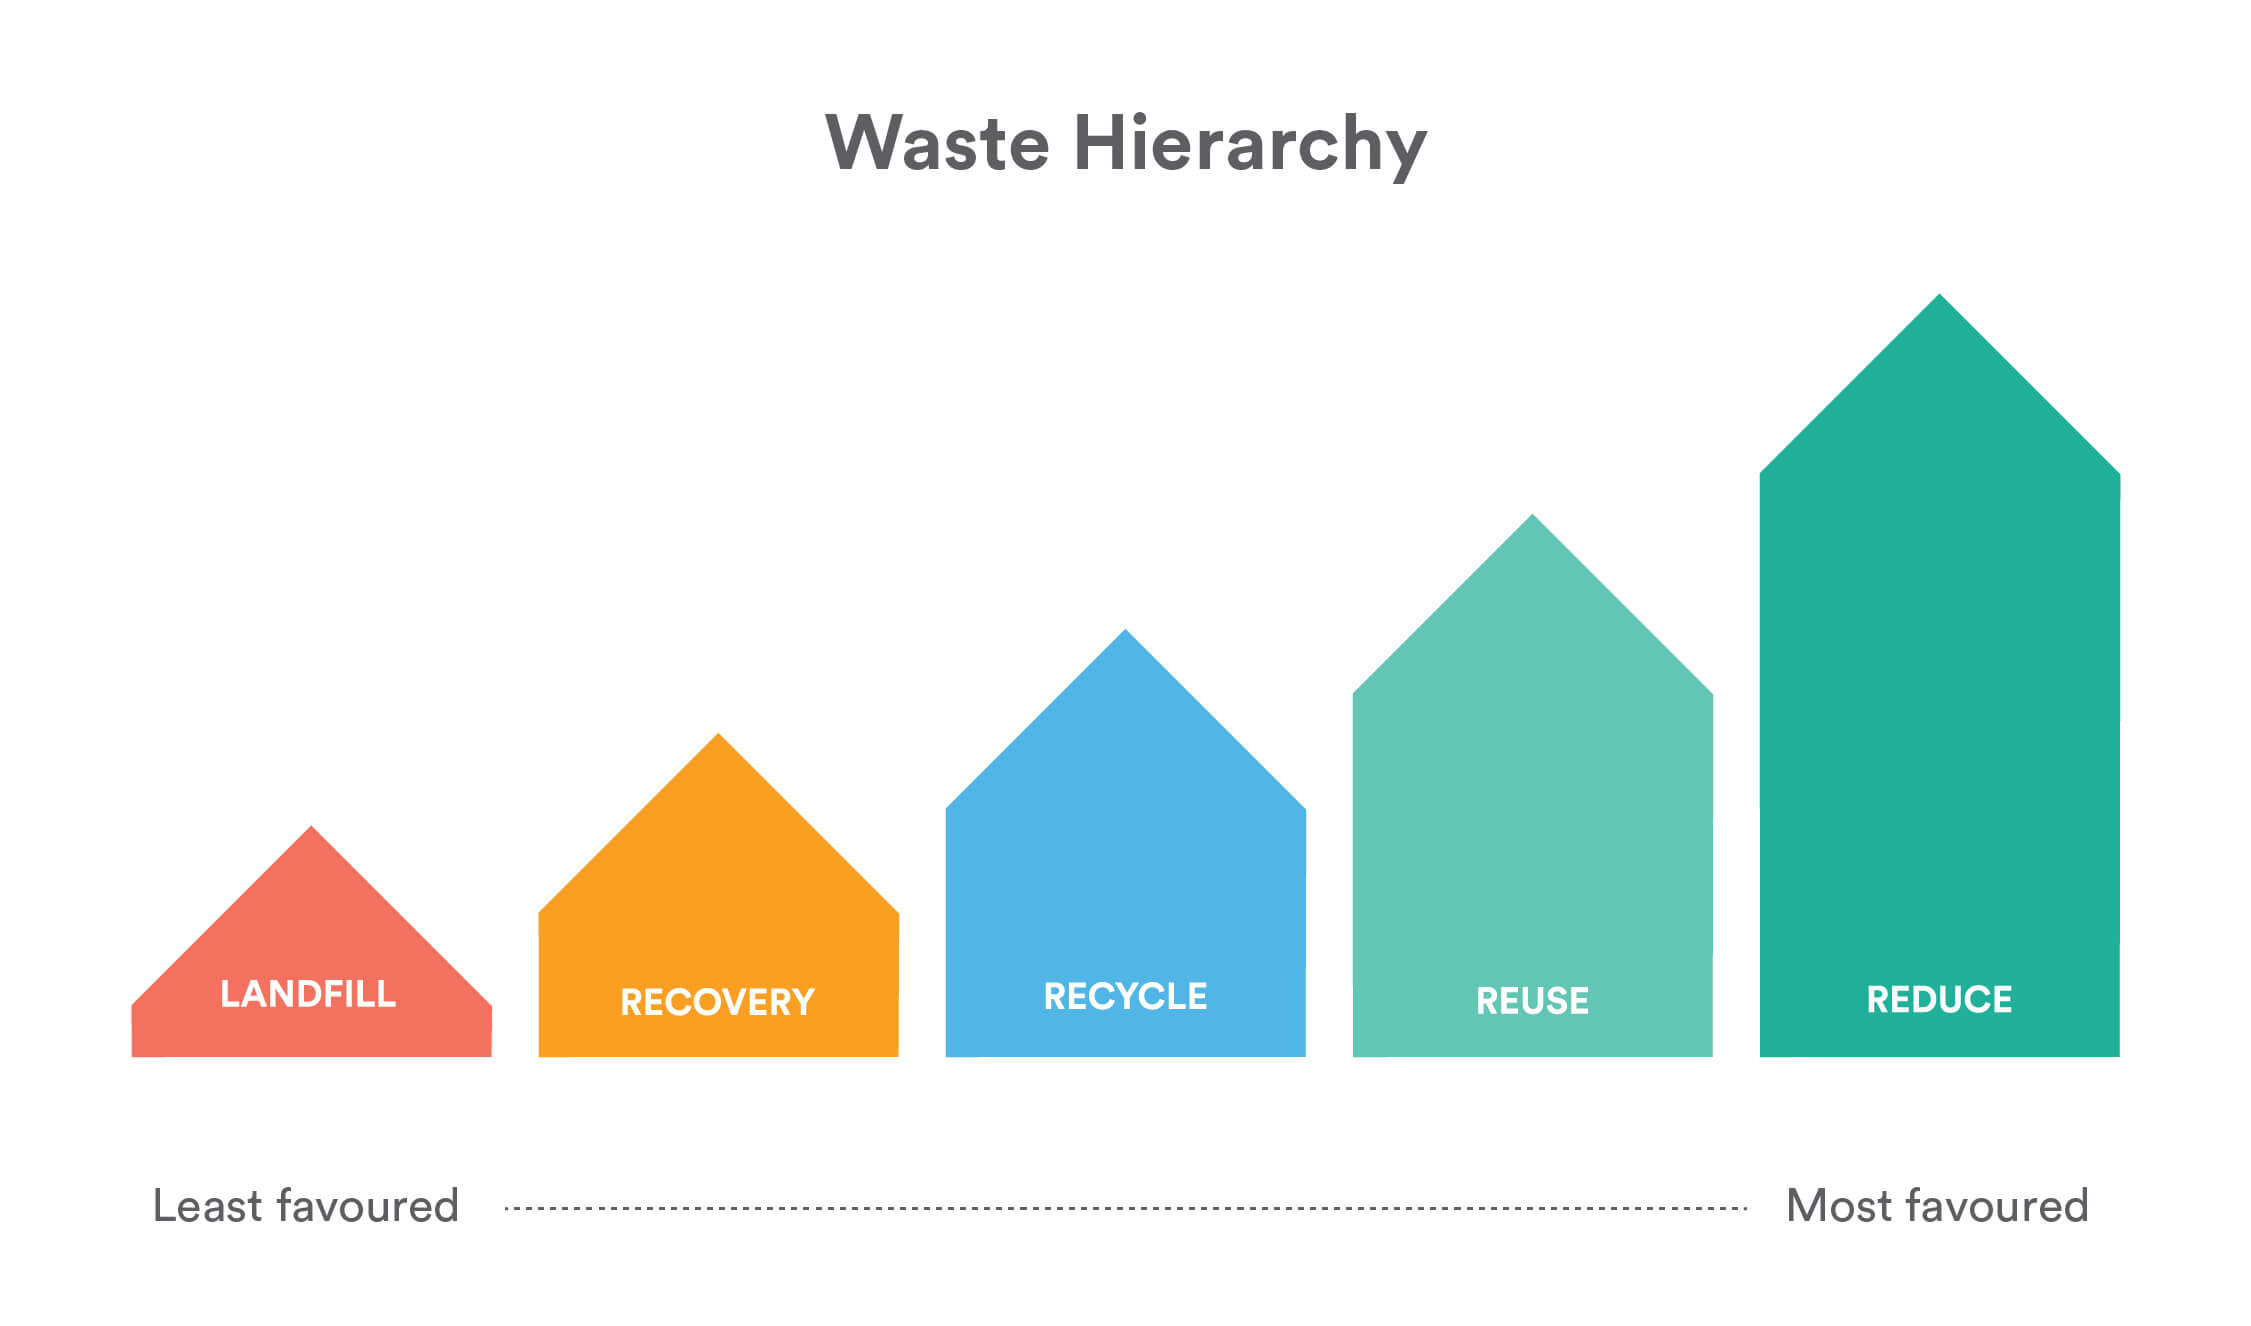 Infographic visualising waste hierarchy